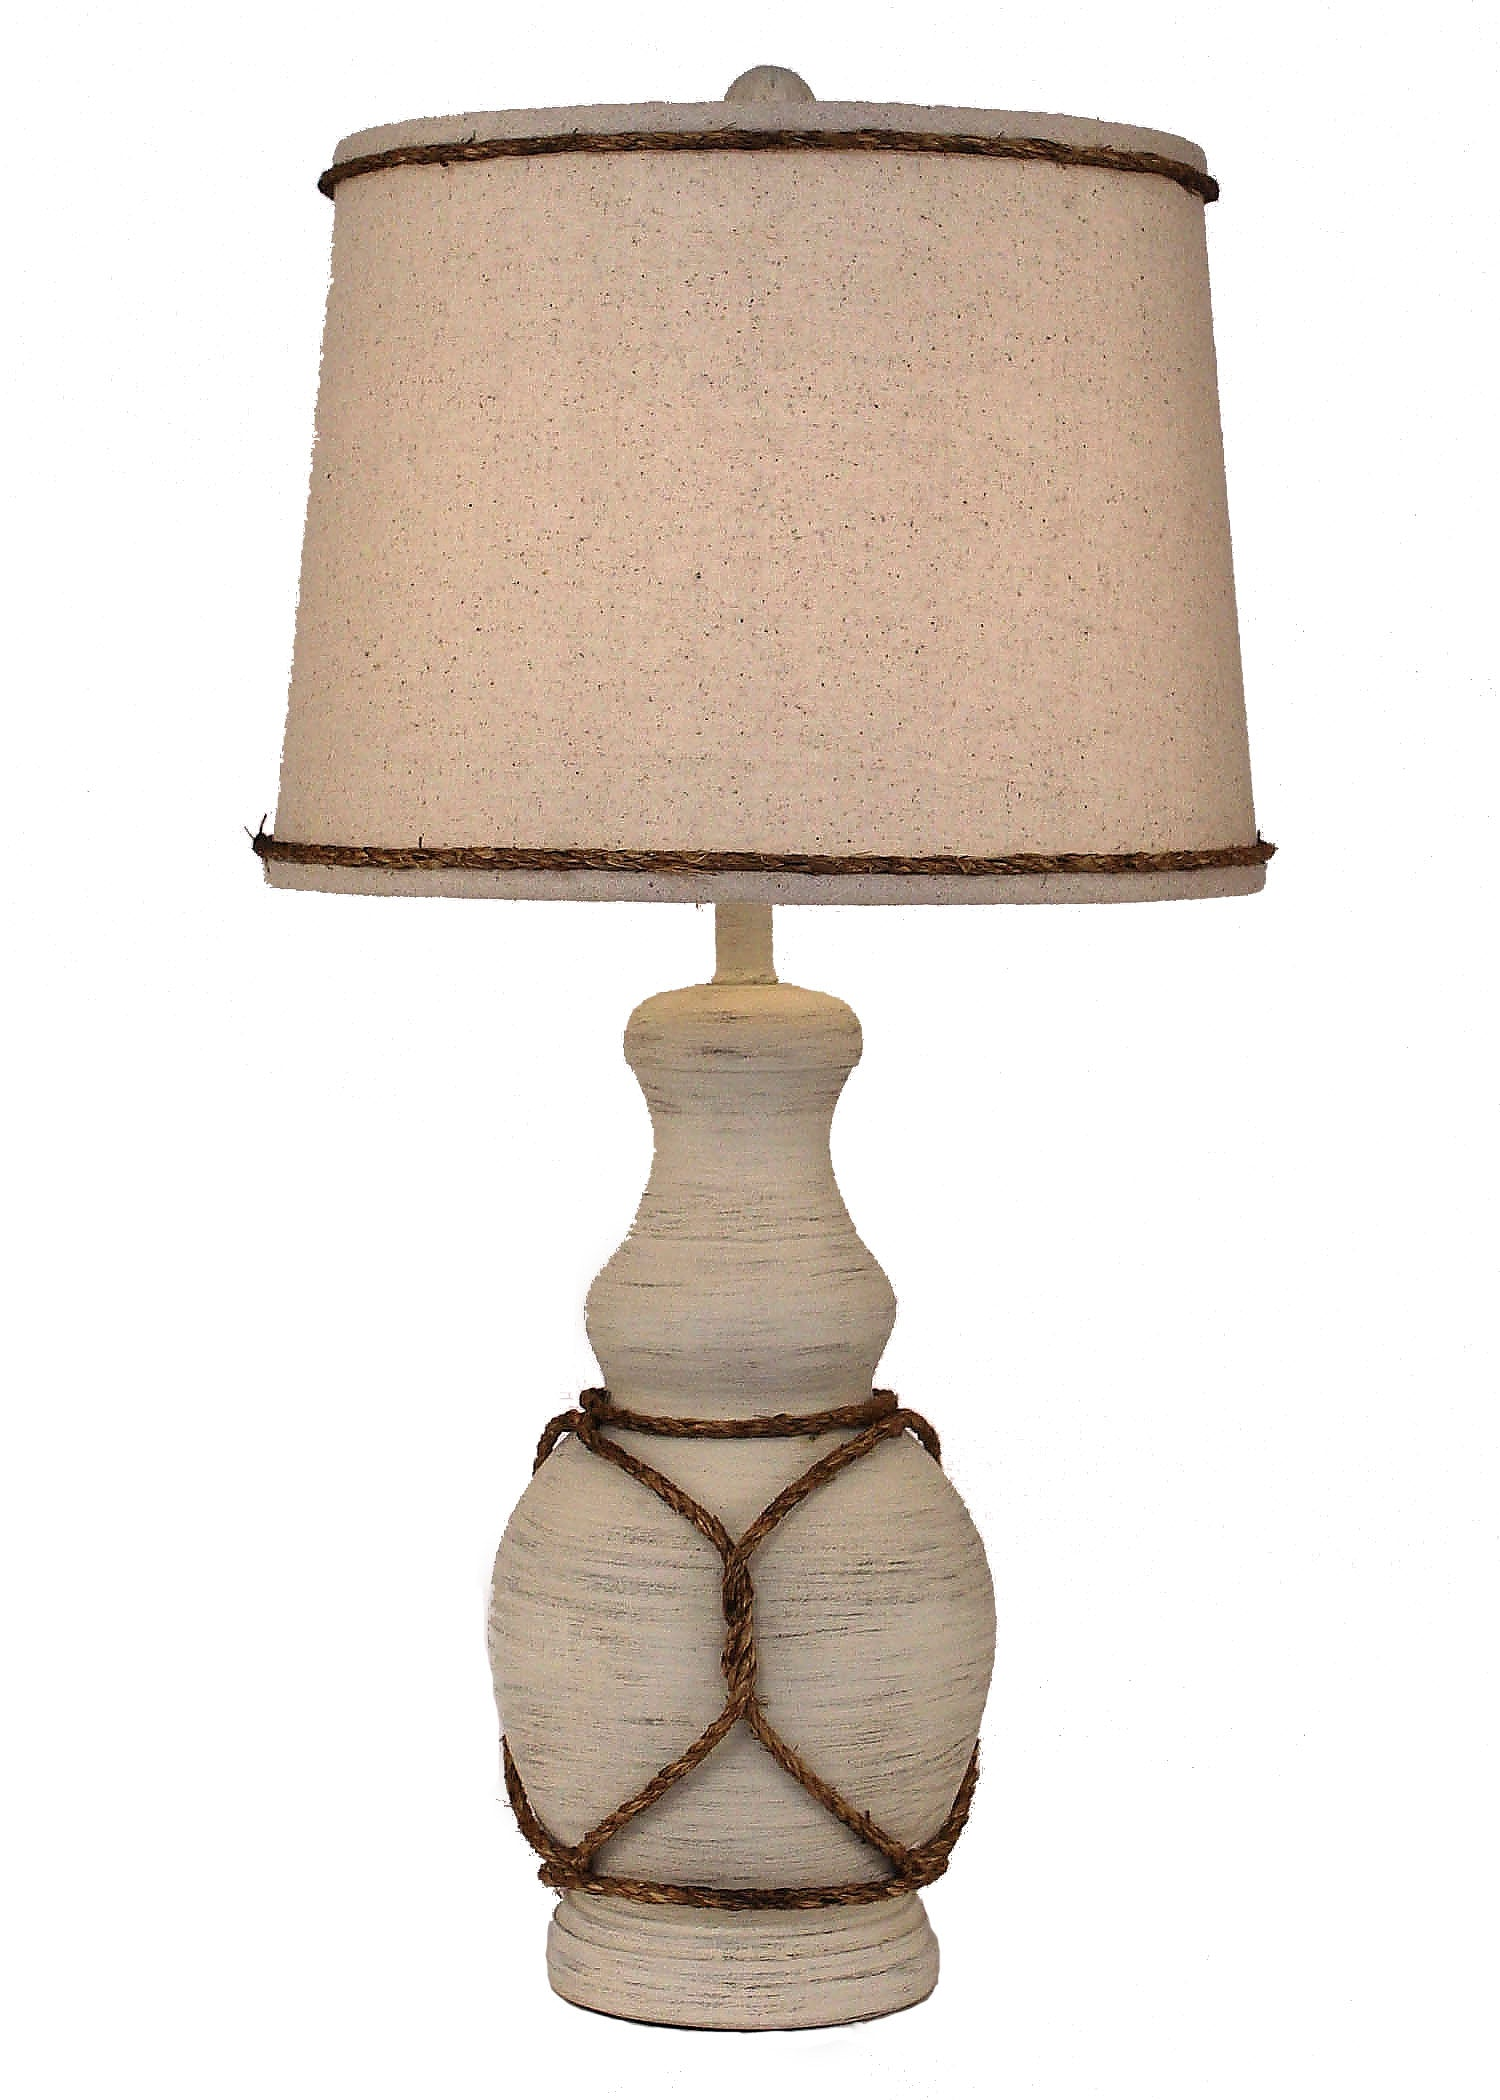 Cottage Classic Casual Table Lamp w/ Rope Accent - Coast Lamp Shop